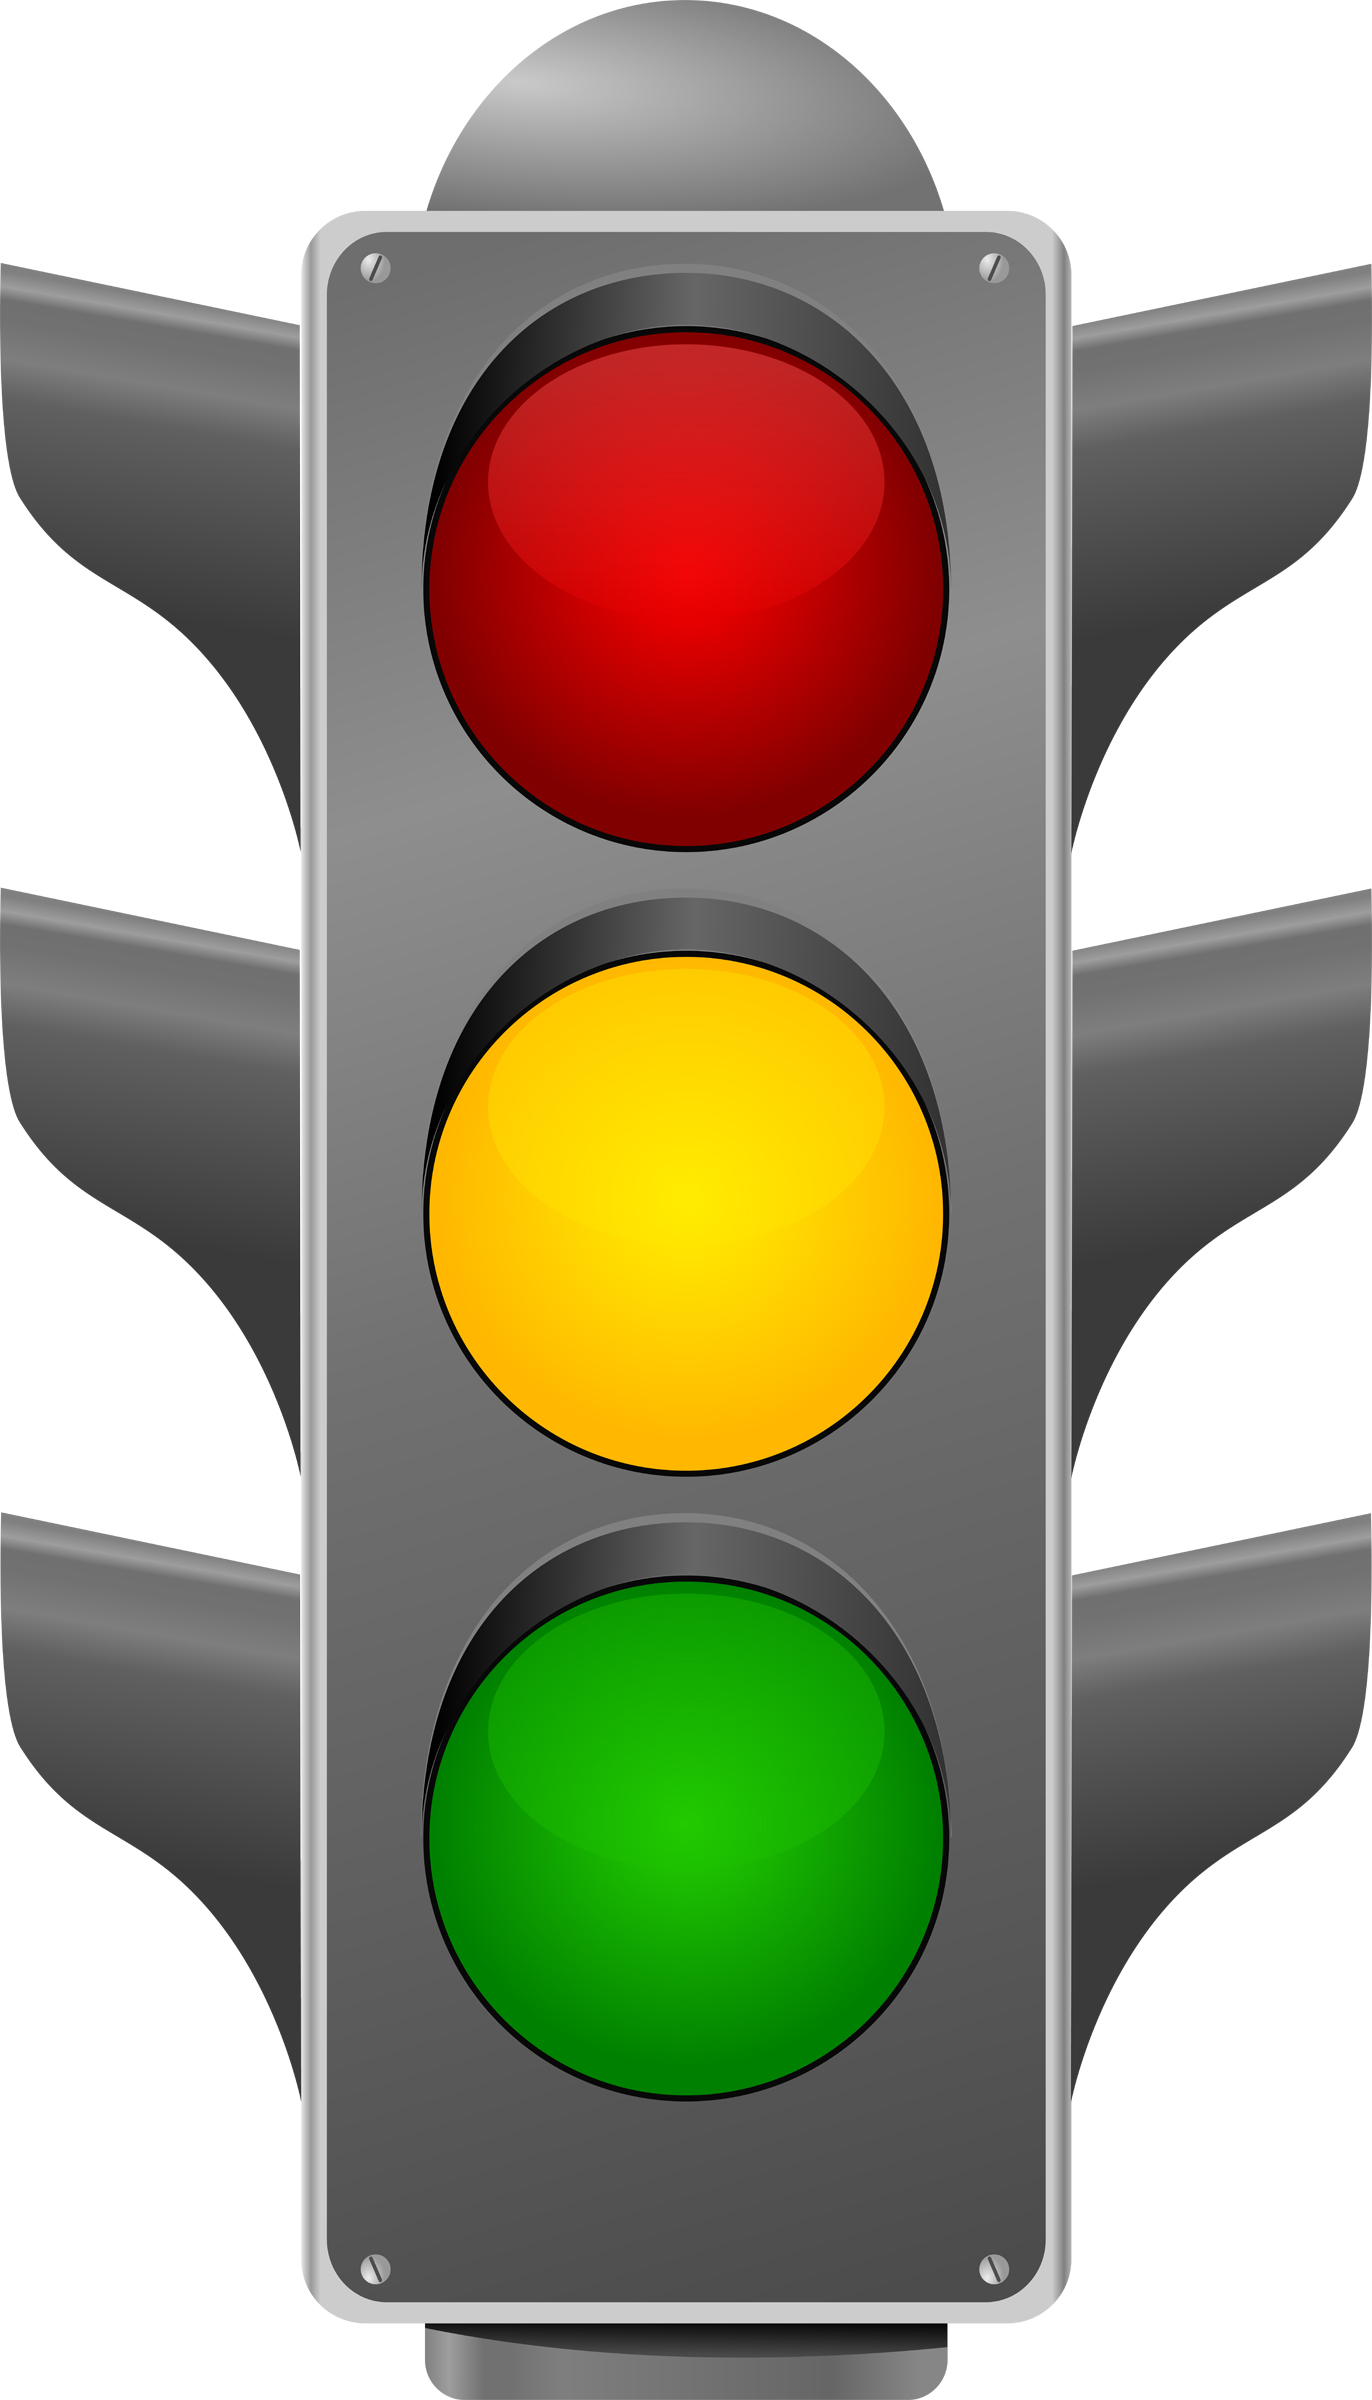 image 5731c73102012199e9025c347dde8f9d resolution 1372x2400 yellow rh objectshowfanonpedia wikia com traffic light clipart free download traffic light clipart outline